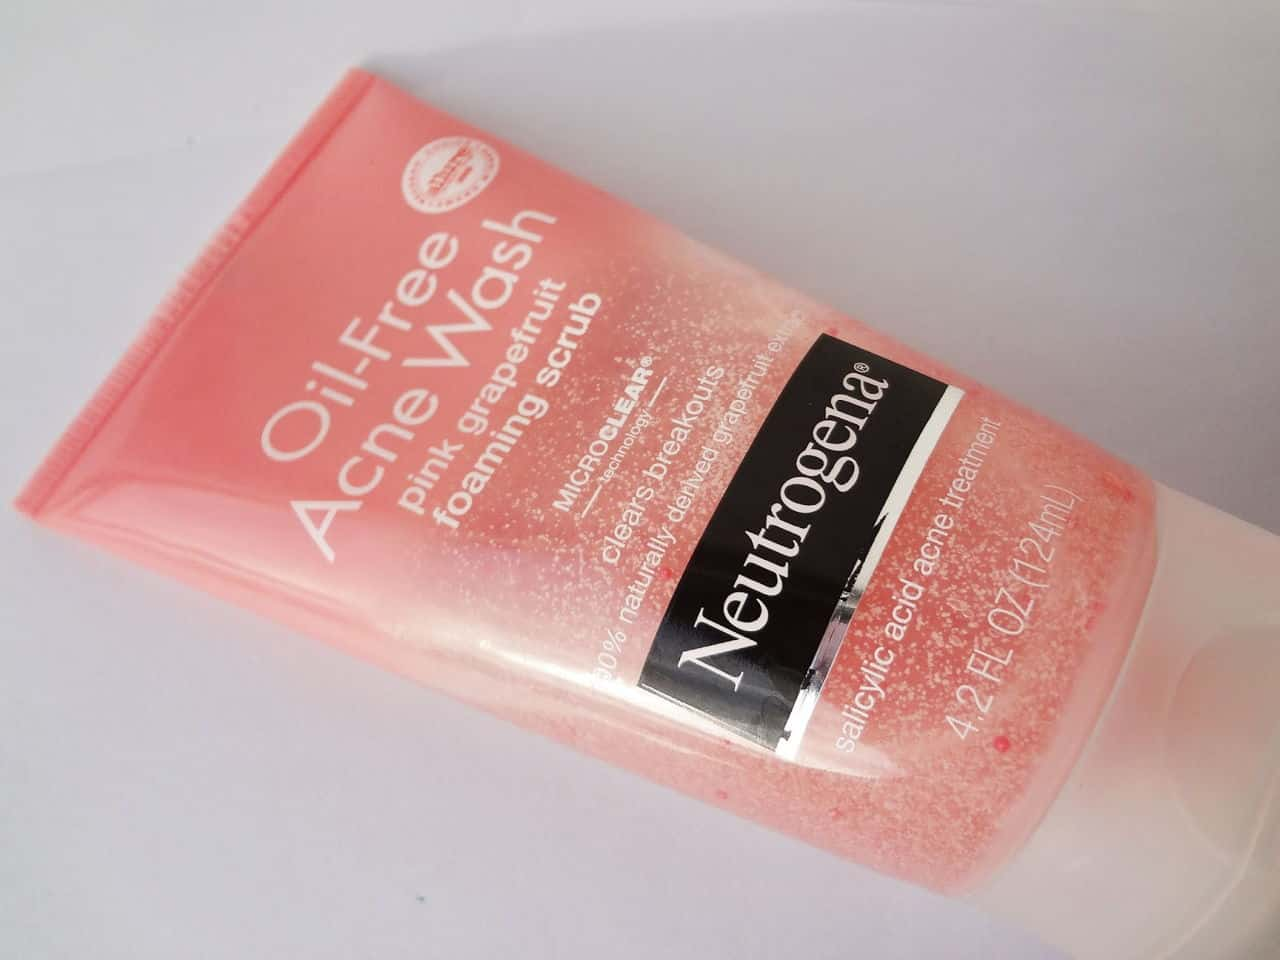 Acne Cleansers – product stop buying